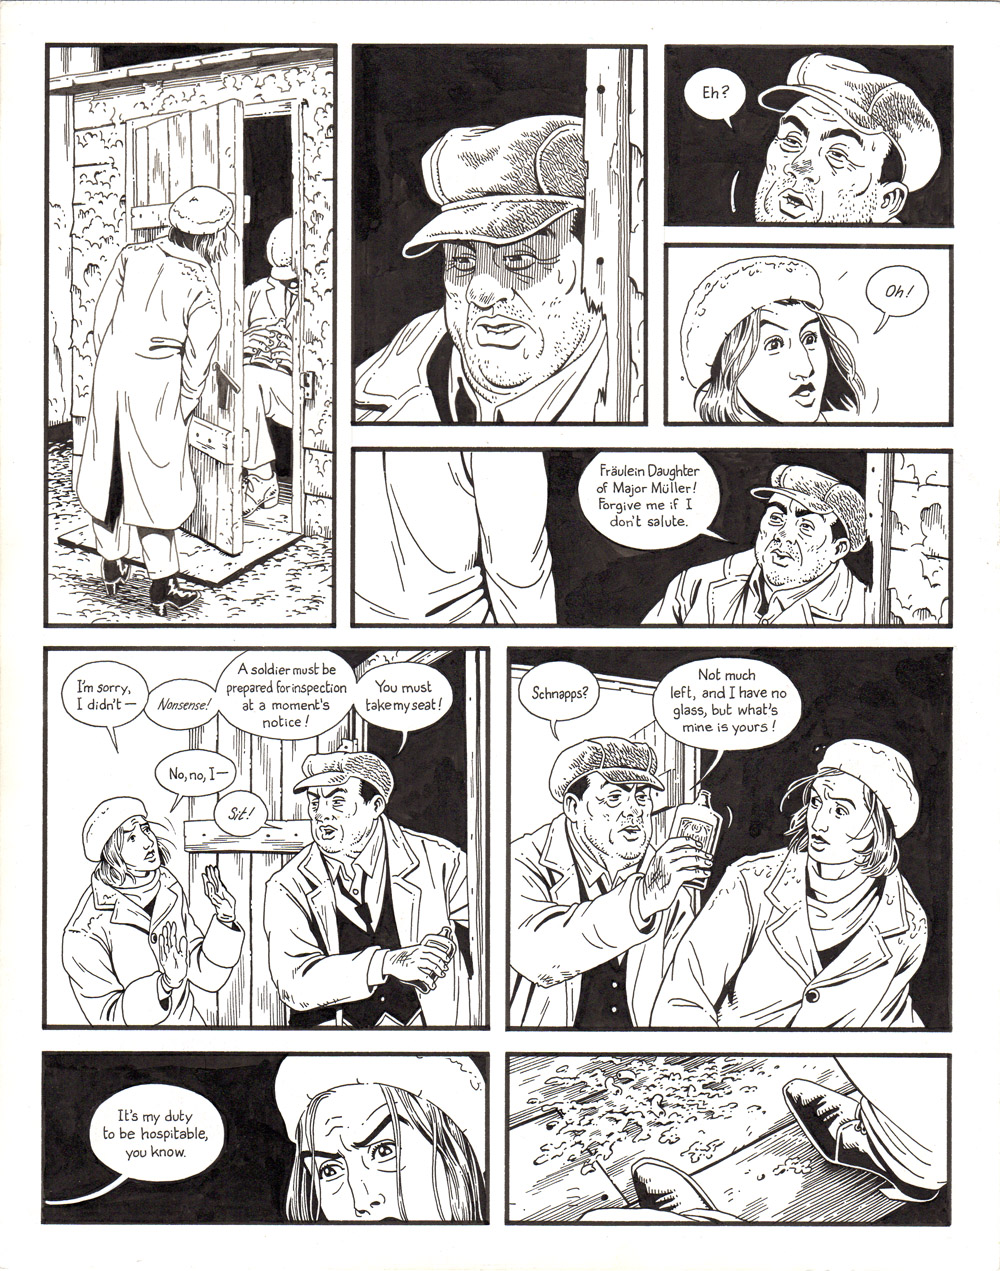 Berlin: Book 1 - Page 112